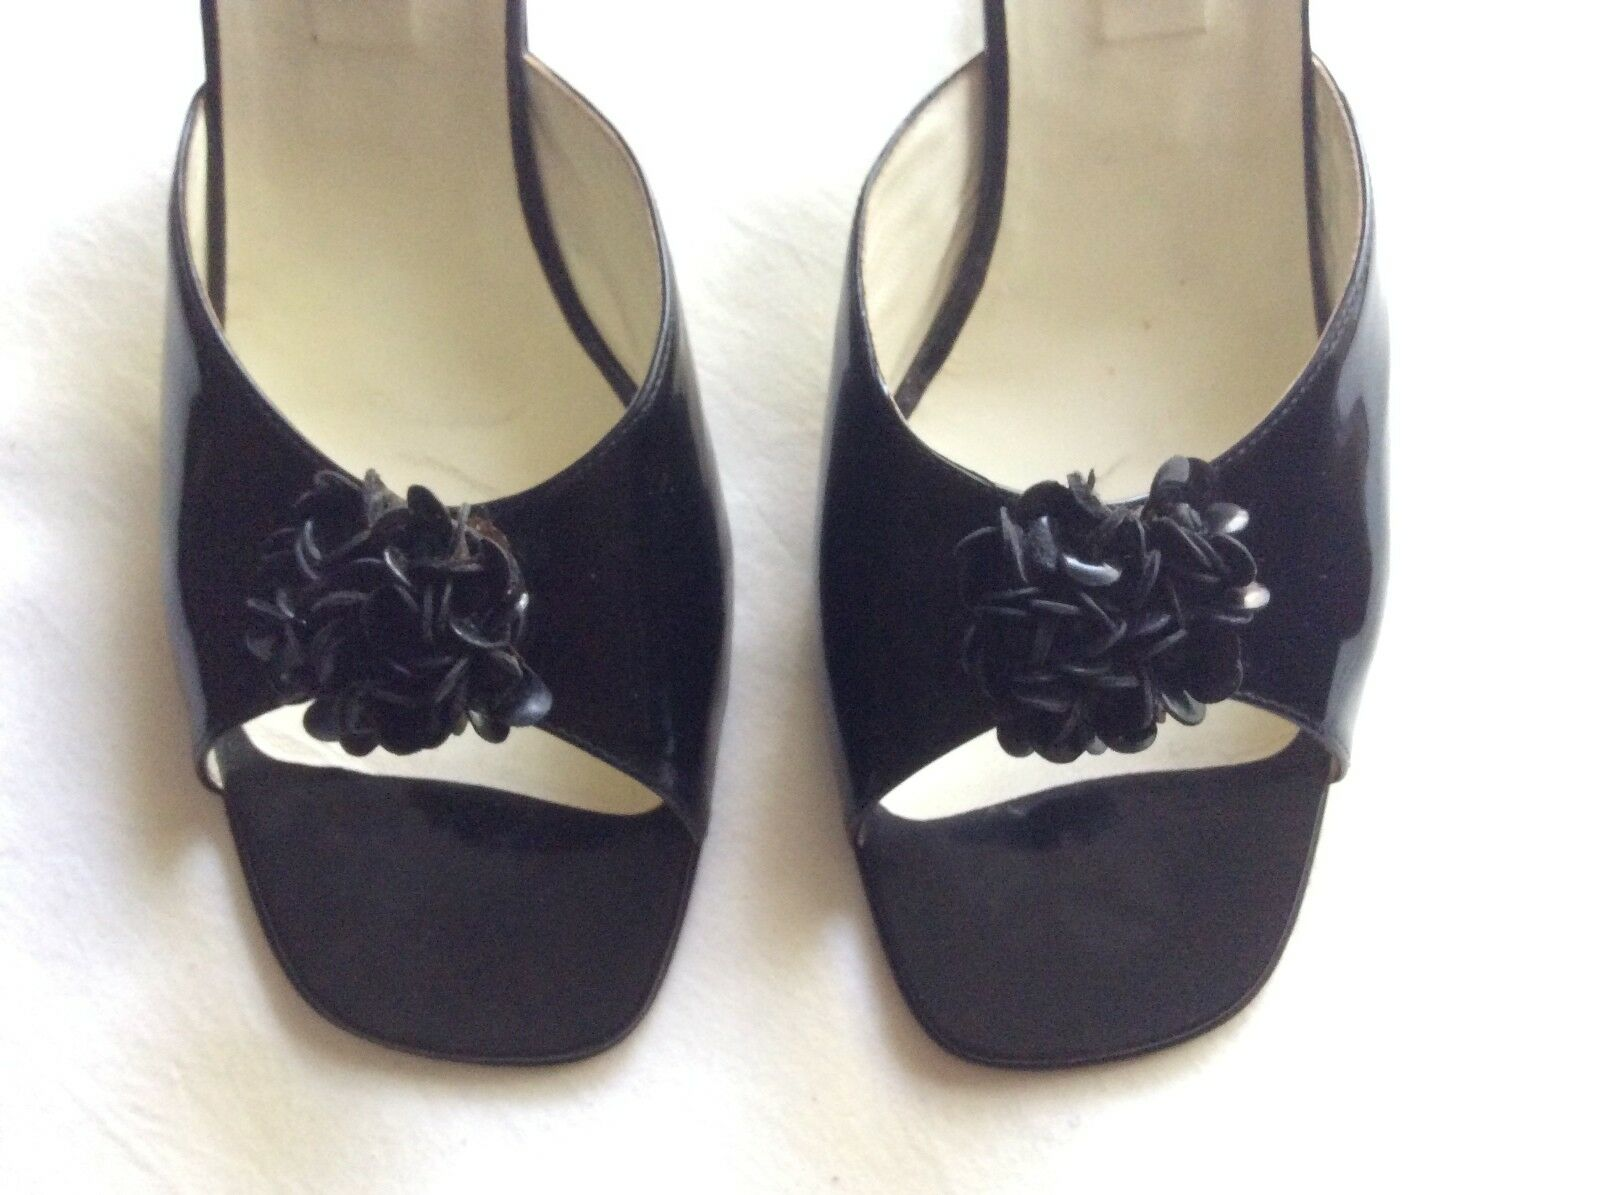 Pre Owned (hardly worn) MARIO PROLOGUA for Fortnum & Mason Mules/slippers Größe40